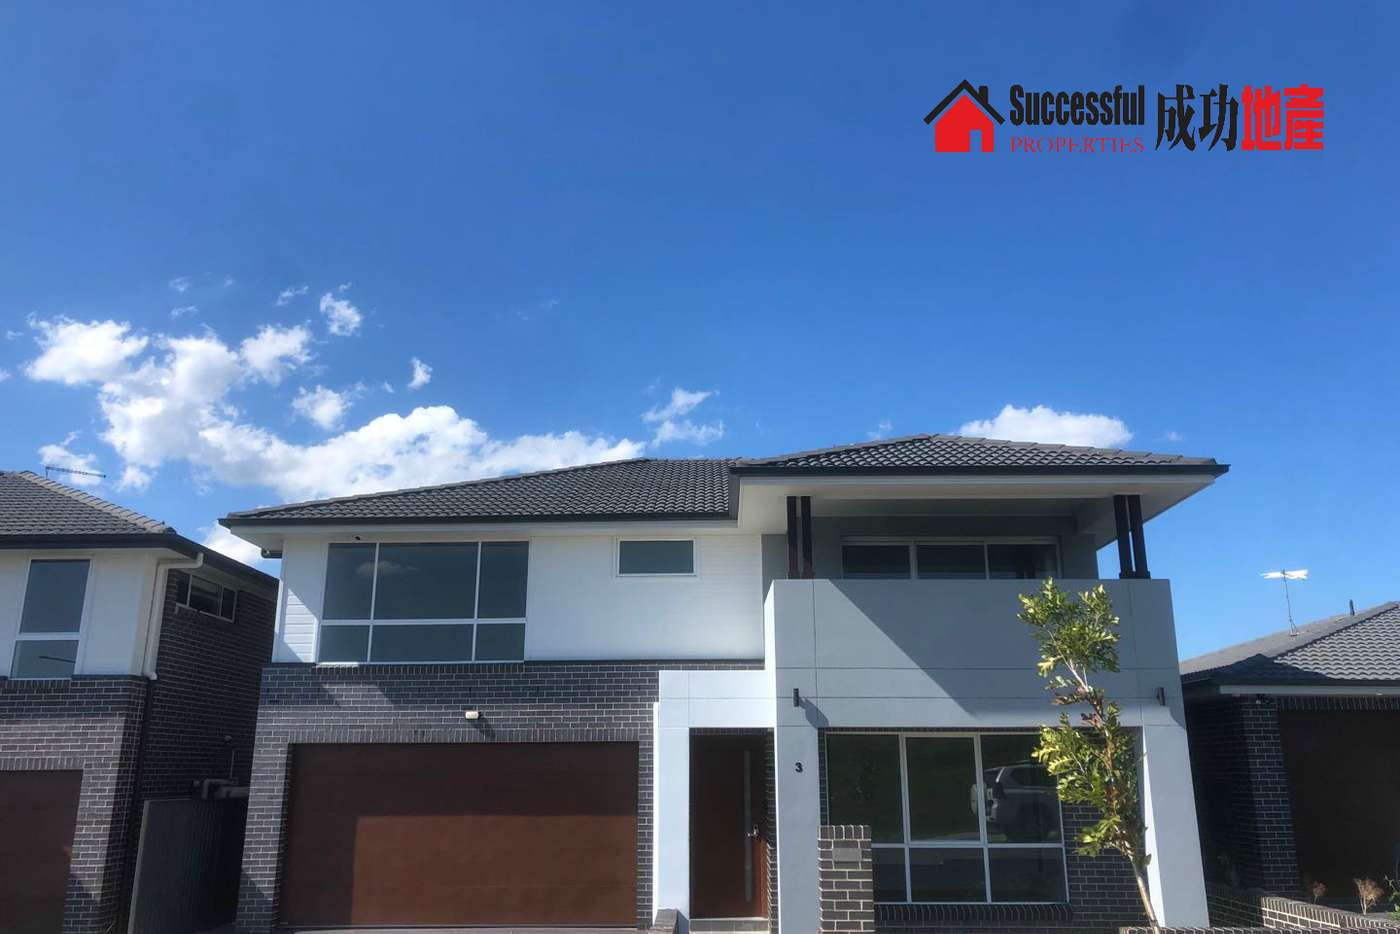 Main view of Homely house listing, 3 Rubicon Street, Schofields NSW 2762